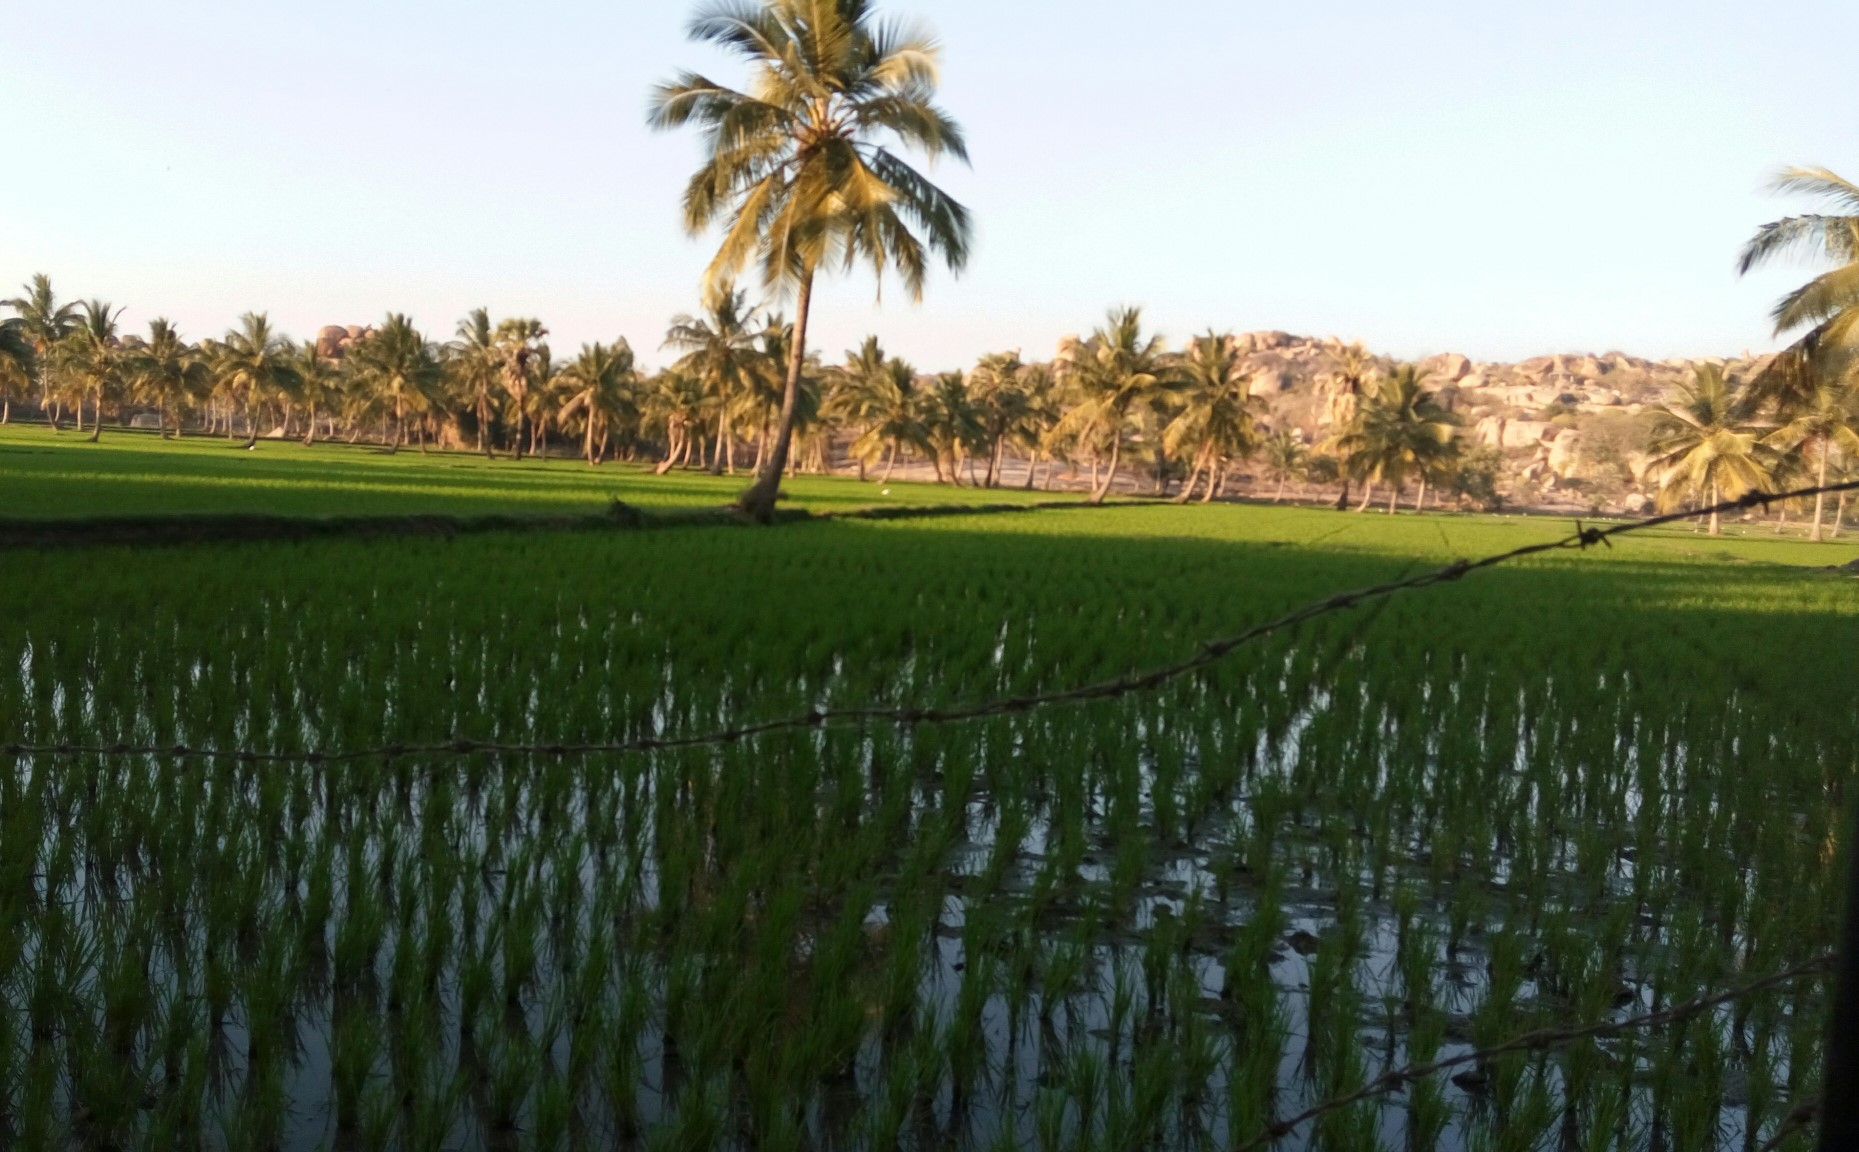 Paddy fields with mountains in the backdrop